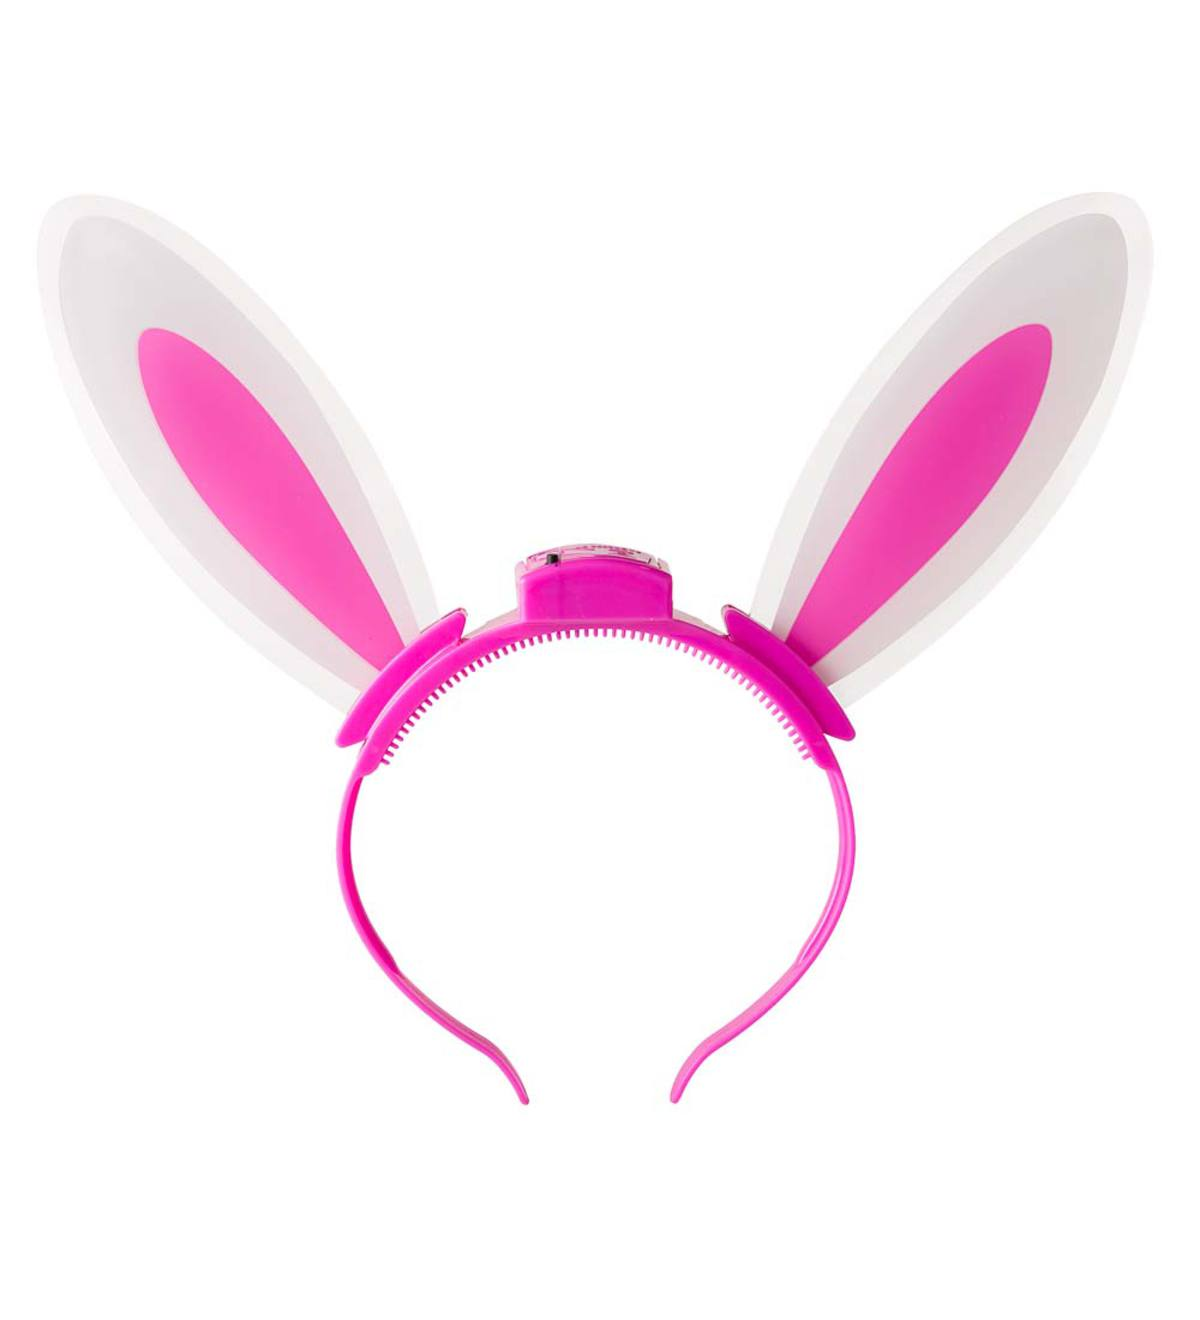 Light-Up Bunny Ears